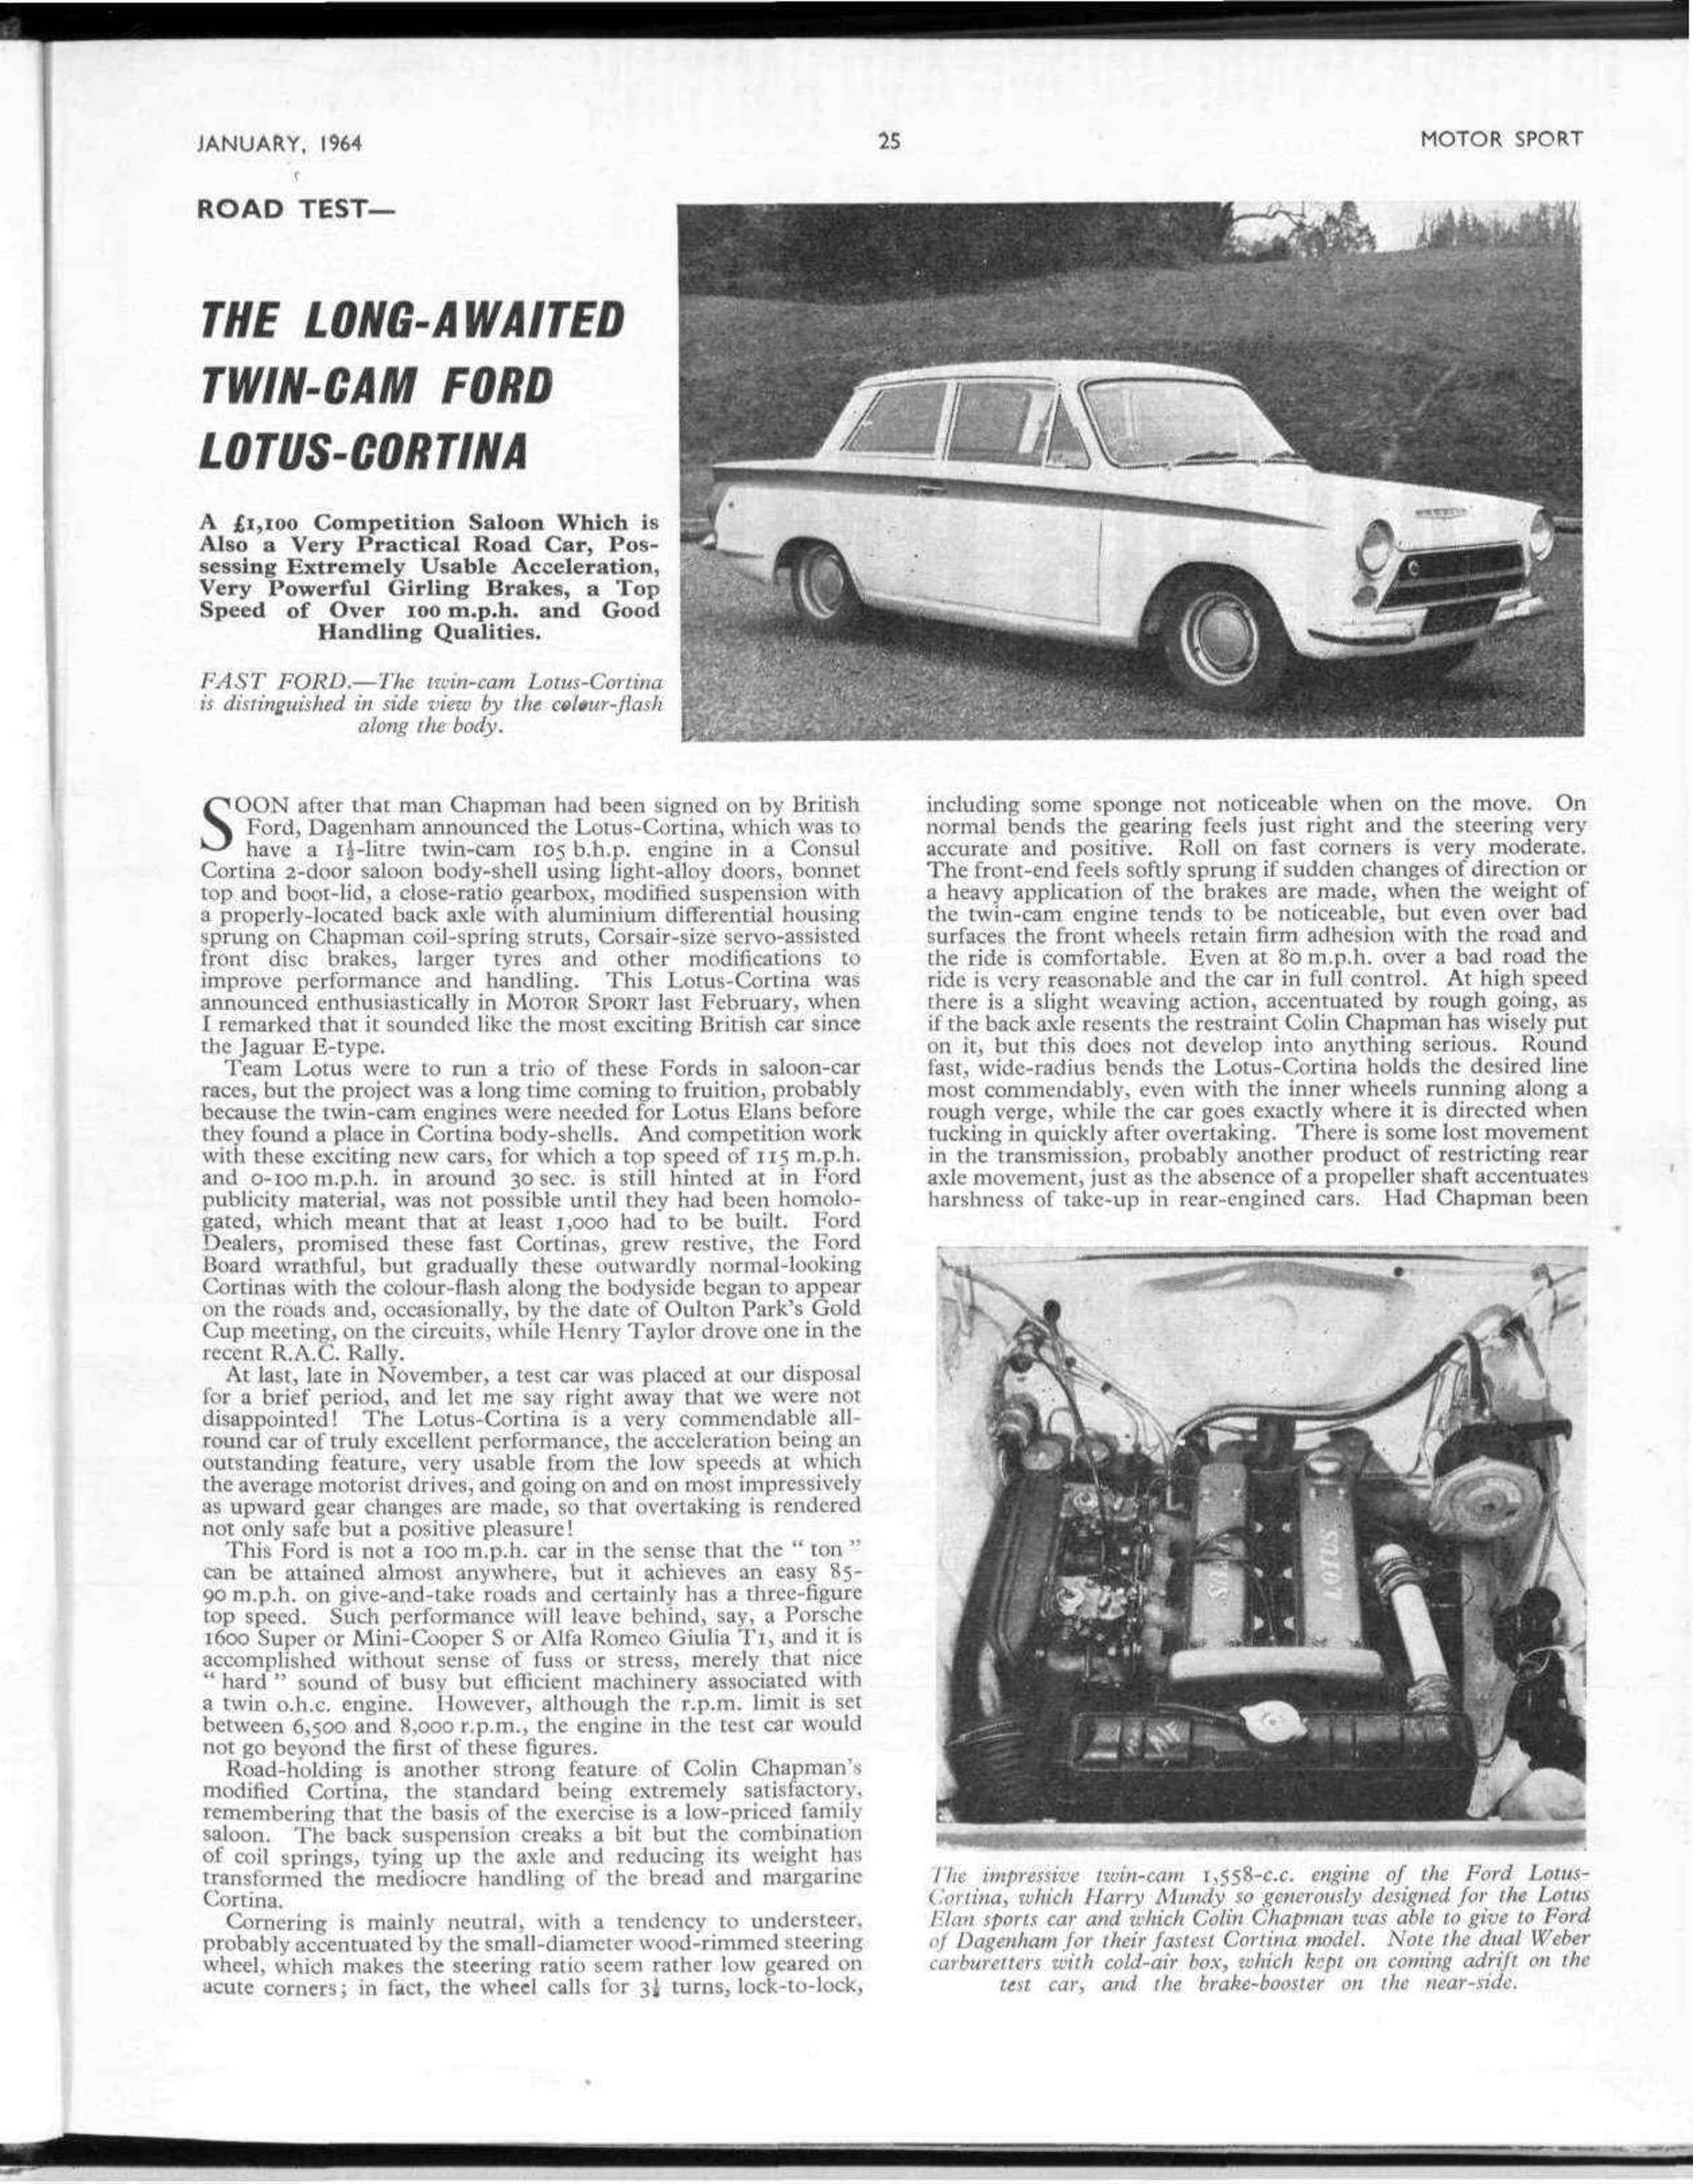 the long awaited twin cam ford lotus cortina image